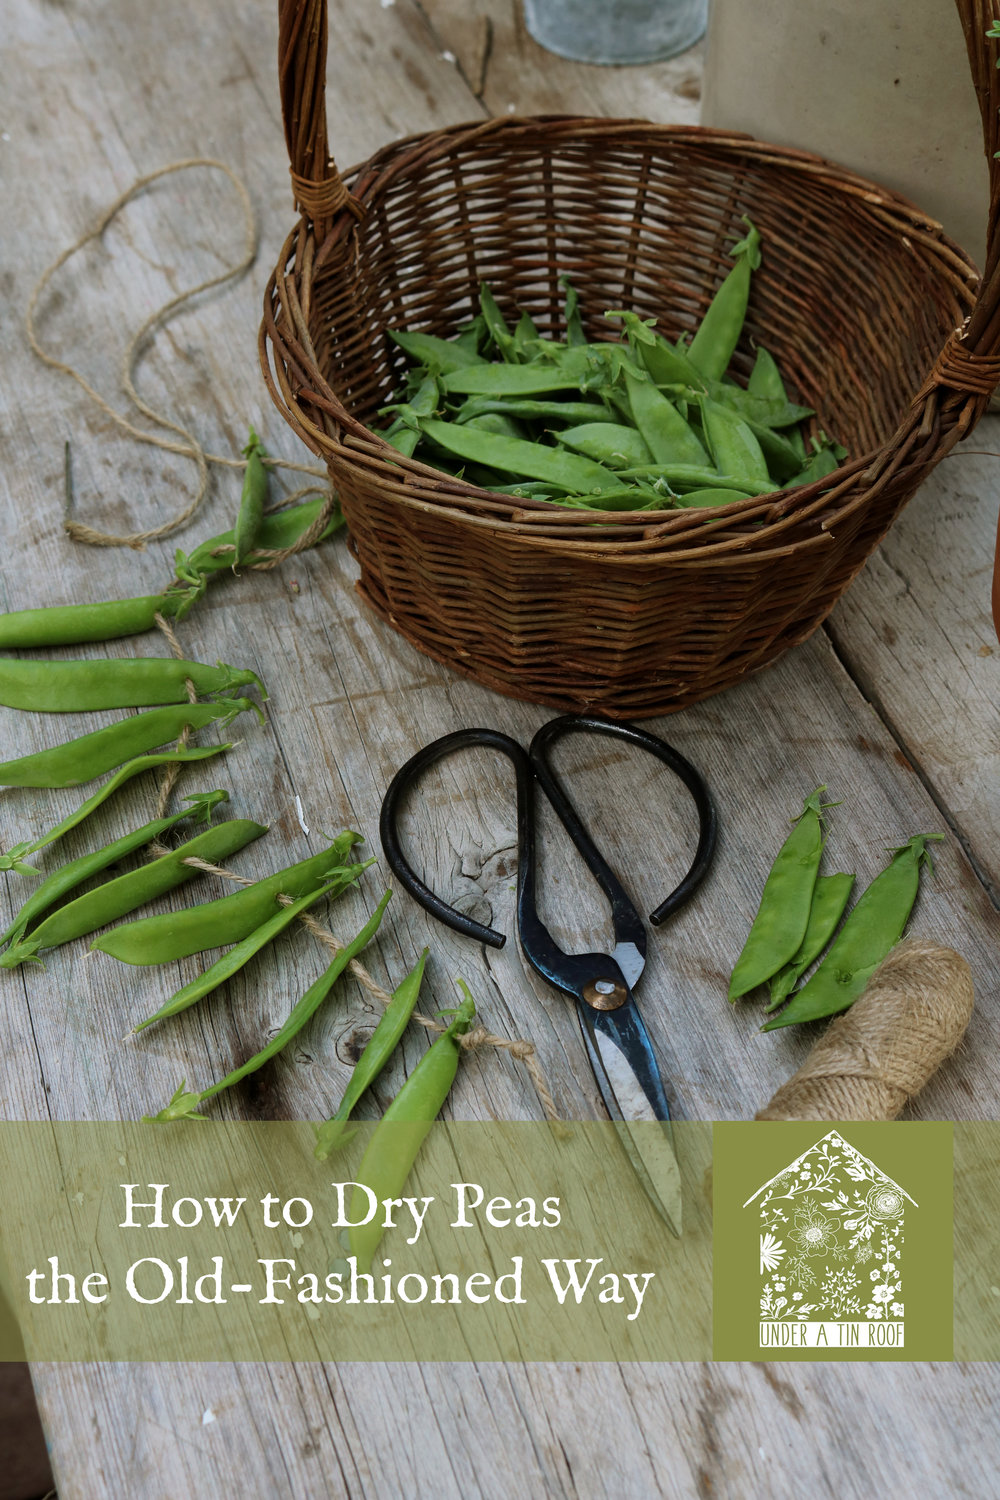 Drying Spent Peas the Old-Fashioned Way - Under A Tin Roof Blog